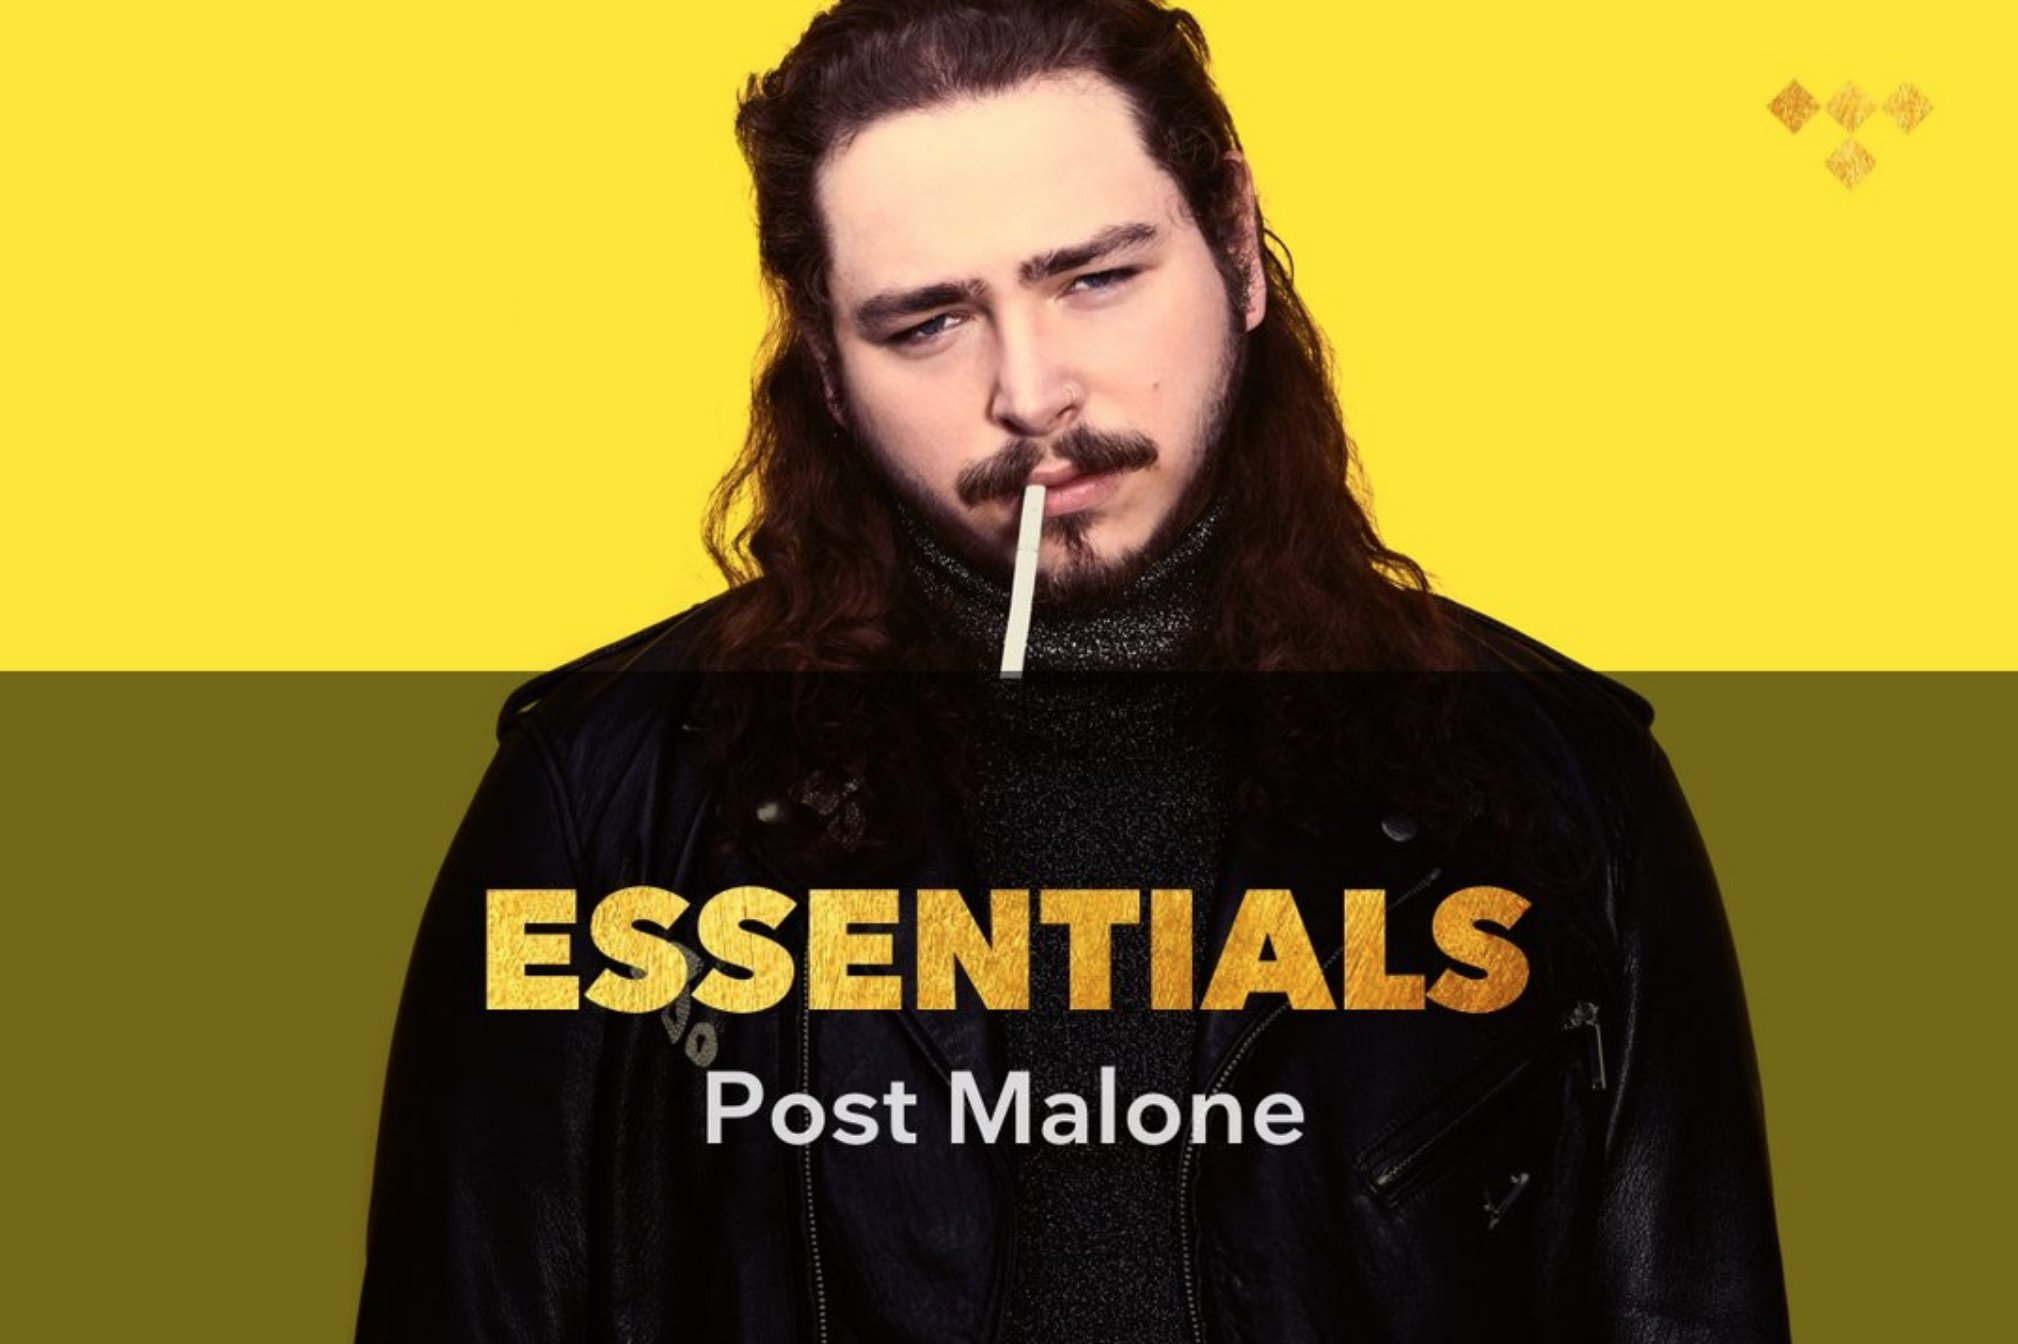 Post Malone Essentials https://t.co/jZU315GDw7 #TIDAL https://t.co/EFcv57NVUW